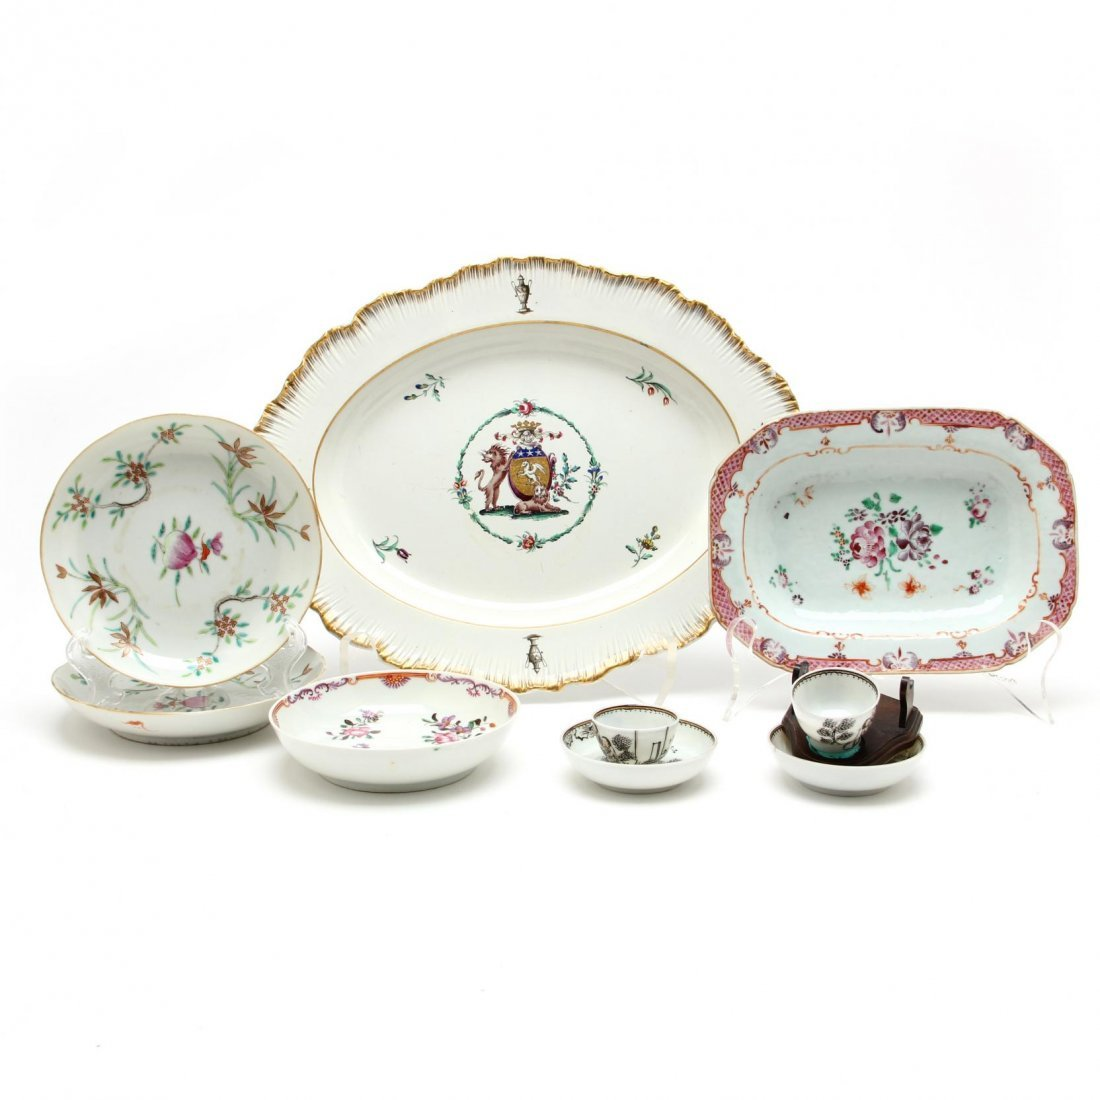 Group of Assorted Chinese Export Porcelain